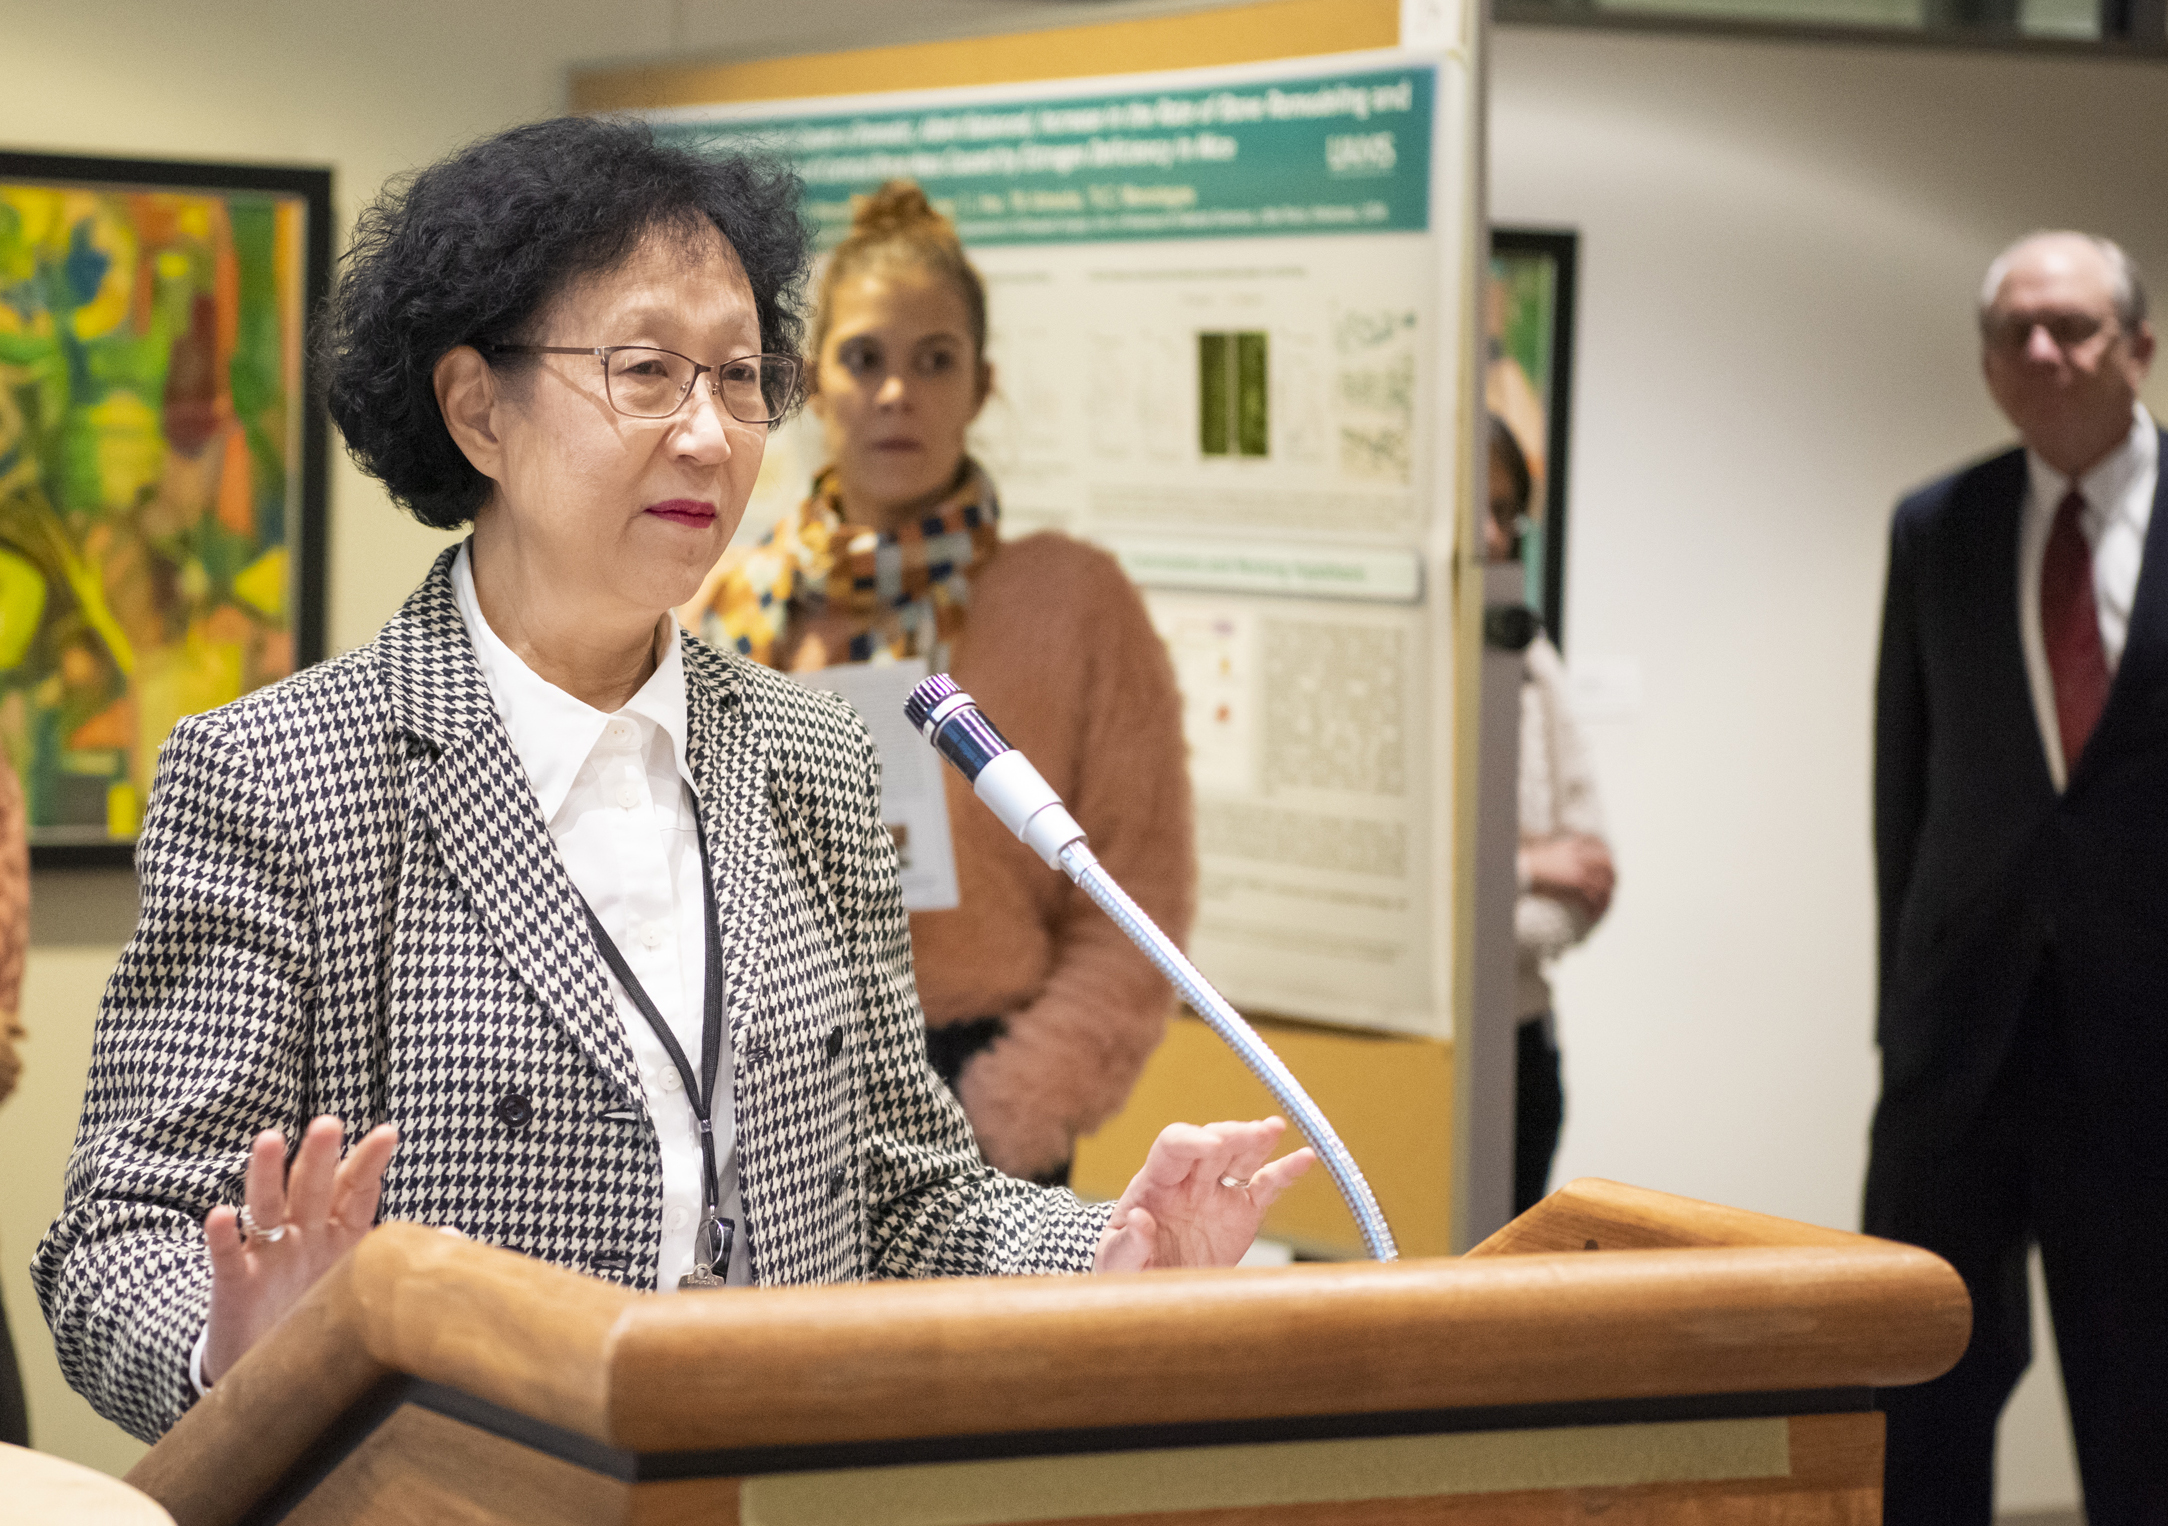 Shuk-Mei Ho, Ph.D., UAMS Vice Chancellor for Research and Innovation (above, file photo), and Laura James, M.D., director of the UAMS Translational Research Institute, announced the inaugural class of Research Academy Scholars.